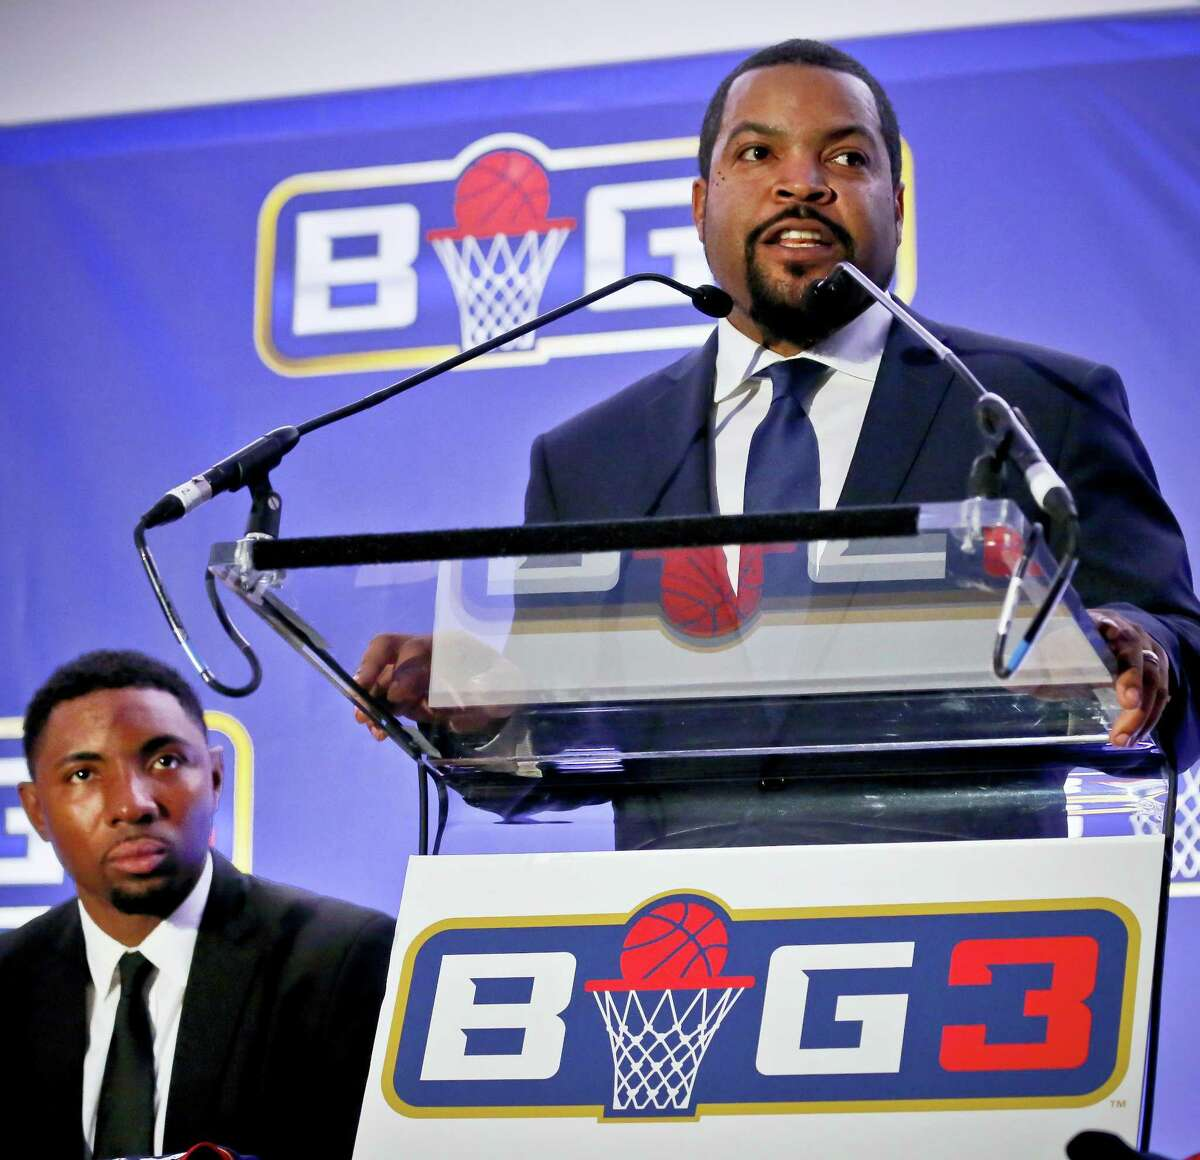 Ice Cube says his Big3 basketball league is open to moving its championship game to another arena in Las Vegas to make way for Floyd Mayweather's boxing match against Conor McGregor. The game is scheduled for Aug. 26 at T-Mobile Arena, the biggest venue in Las Vegas. Mayweather's fight against McGregor was later announced for the same site.